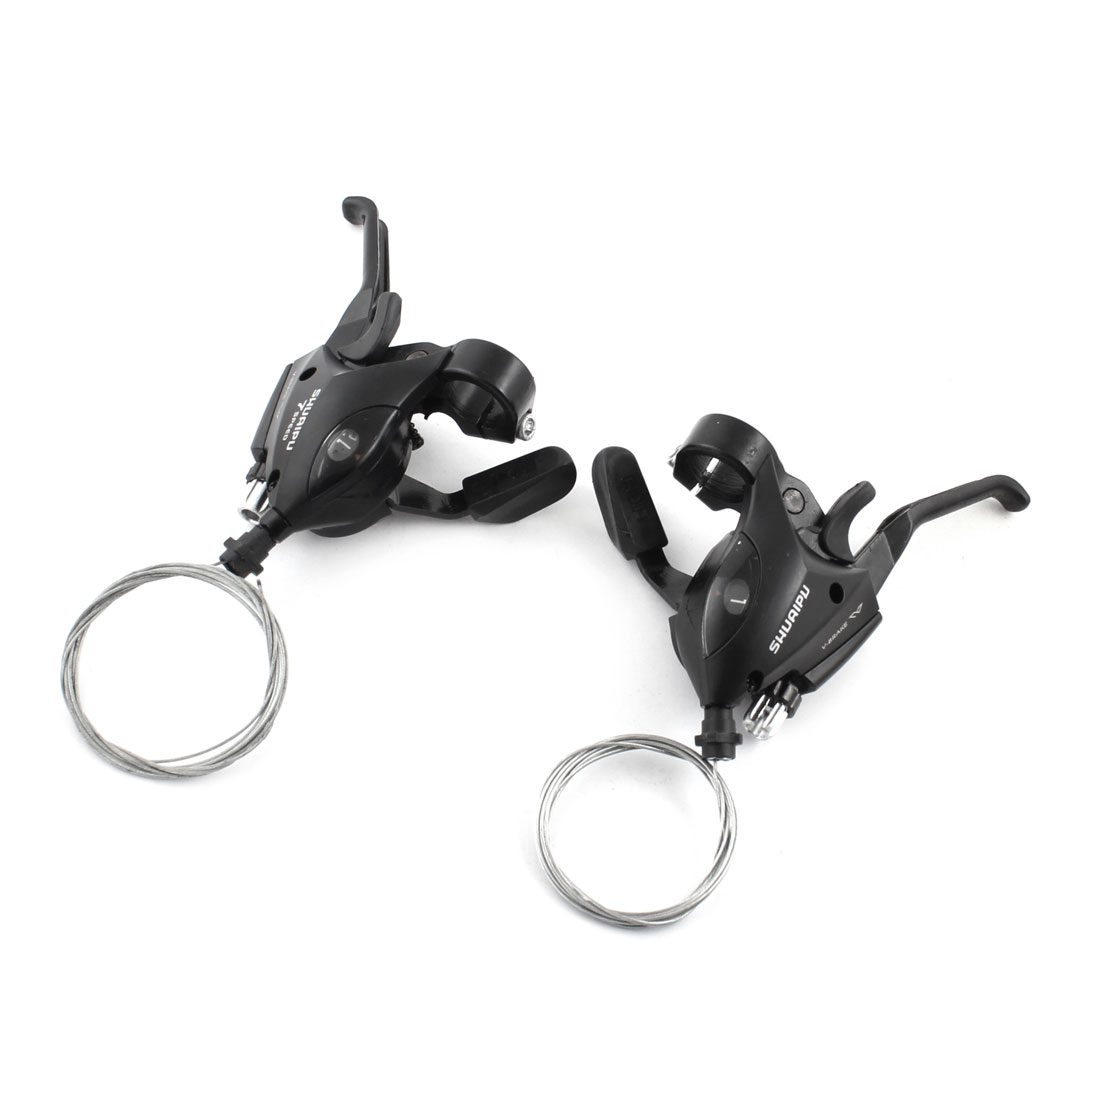 Pair Black Mountain Bike Bicycle Wired Front Rear Brake Levers